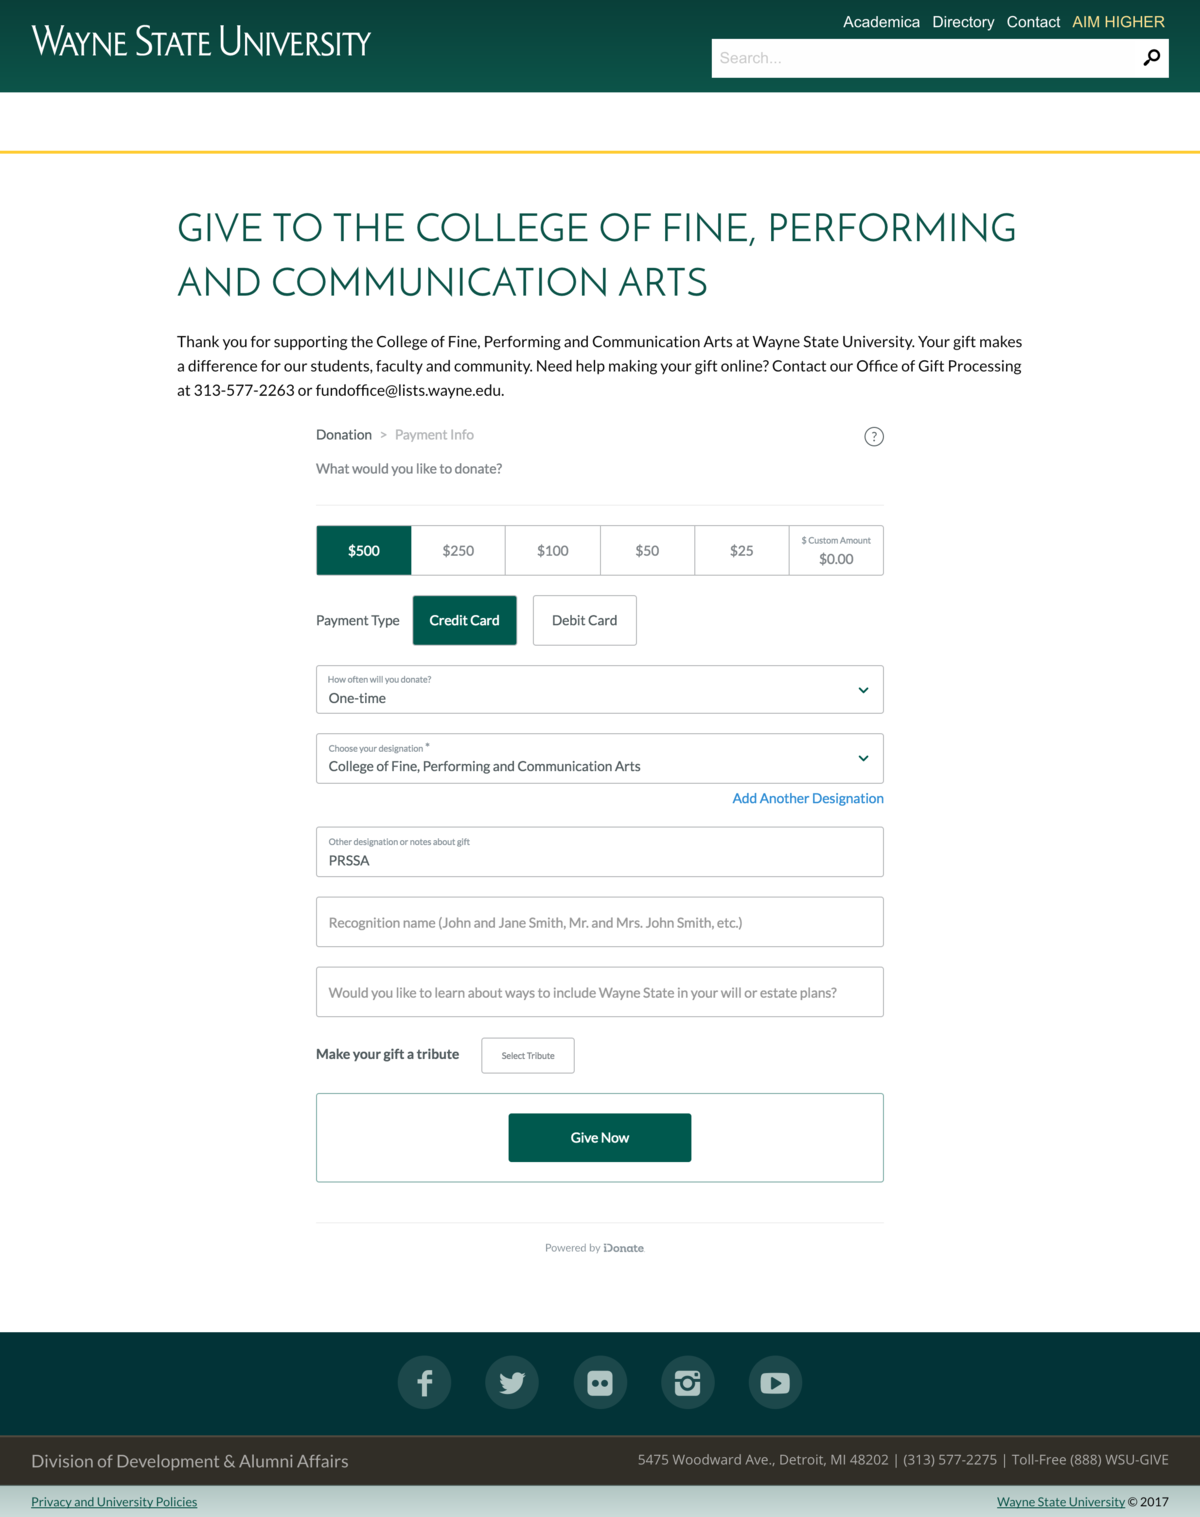 PRSSA website - Give to the College of Fine, Performi_ - https___giving.wayne.edu_donate_cfpca